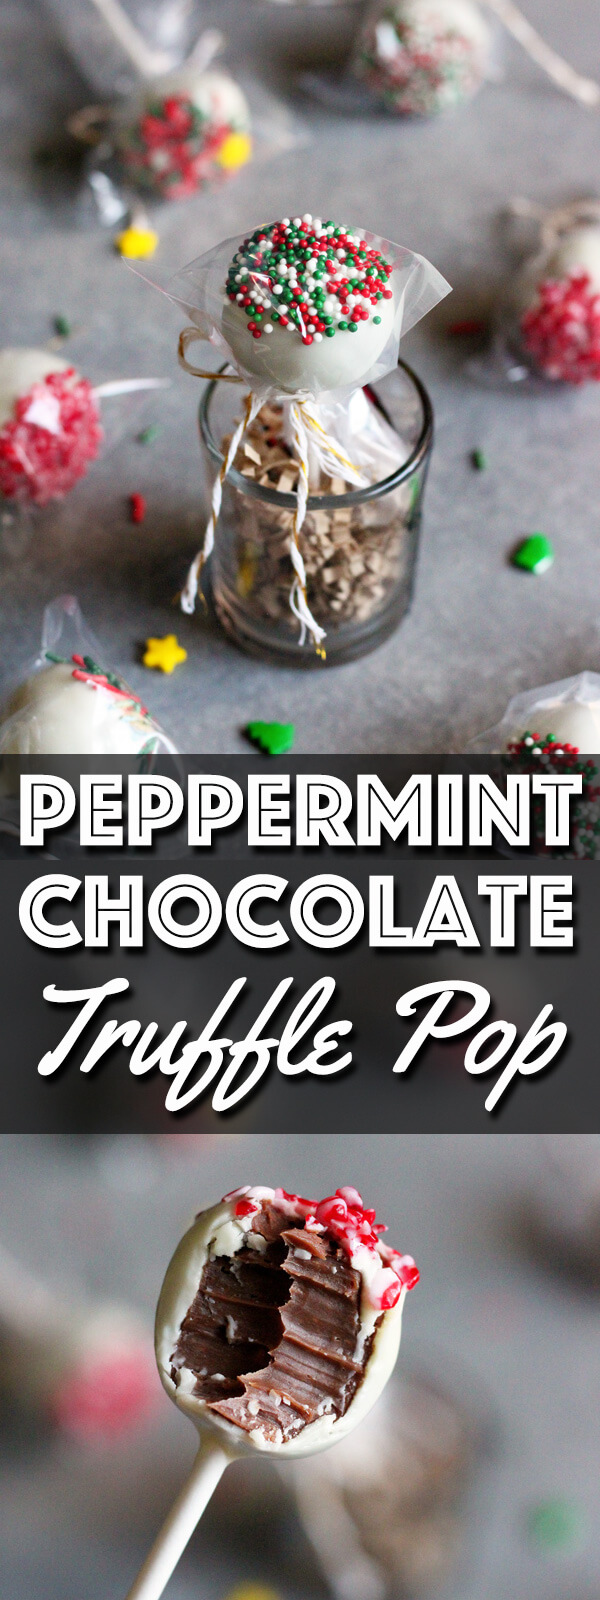 Peppermint chocolate truffle pop long pin collage